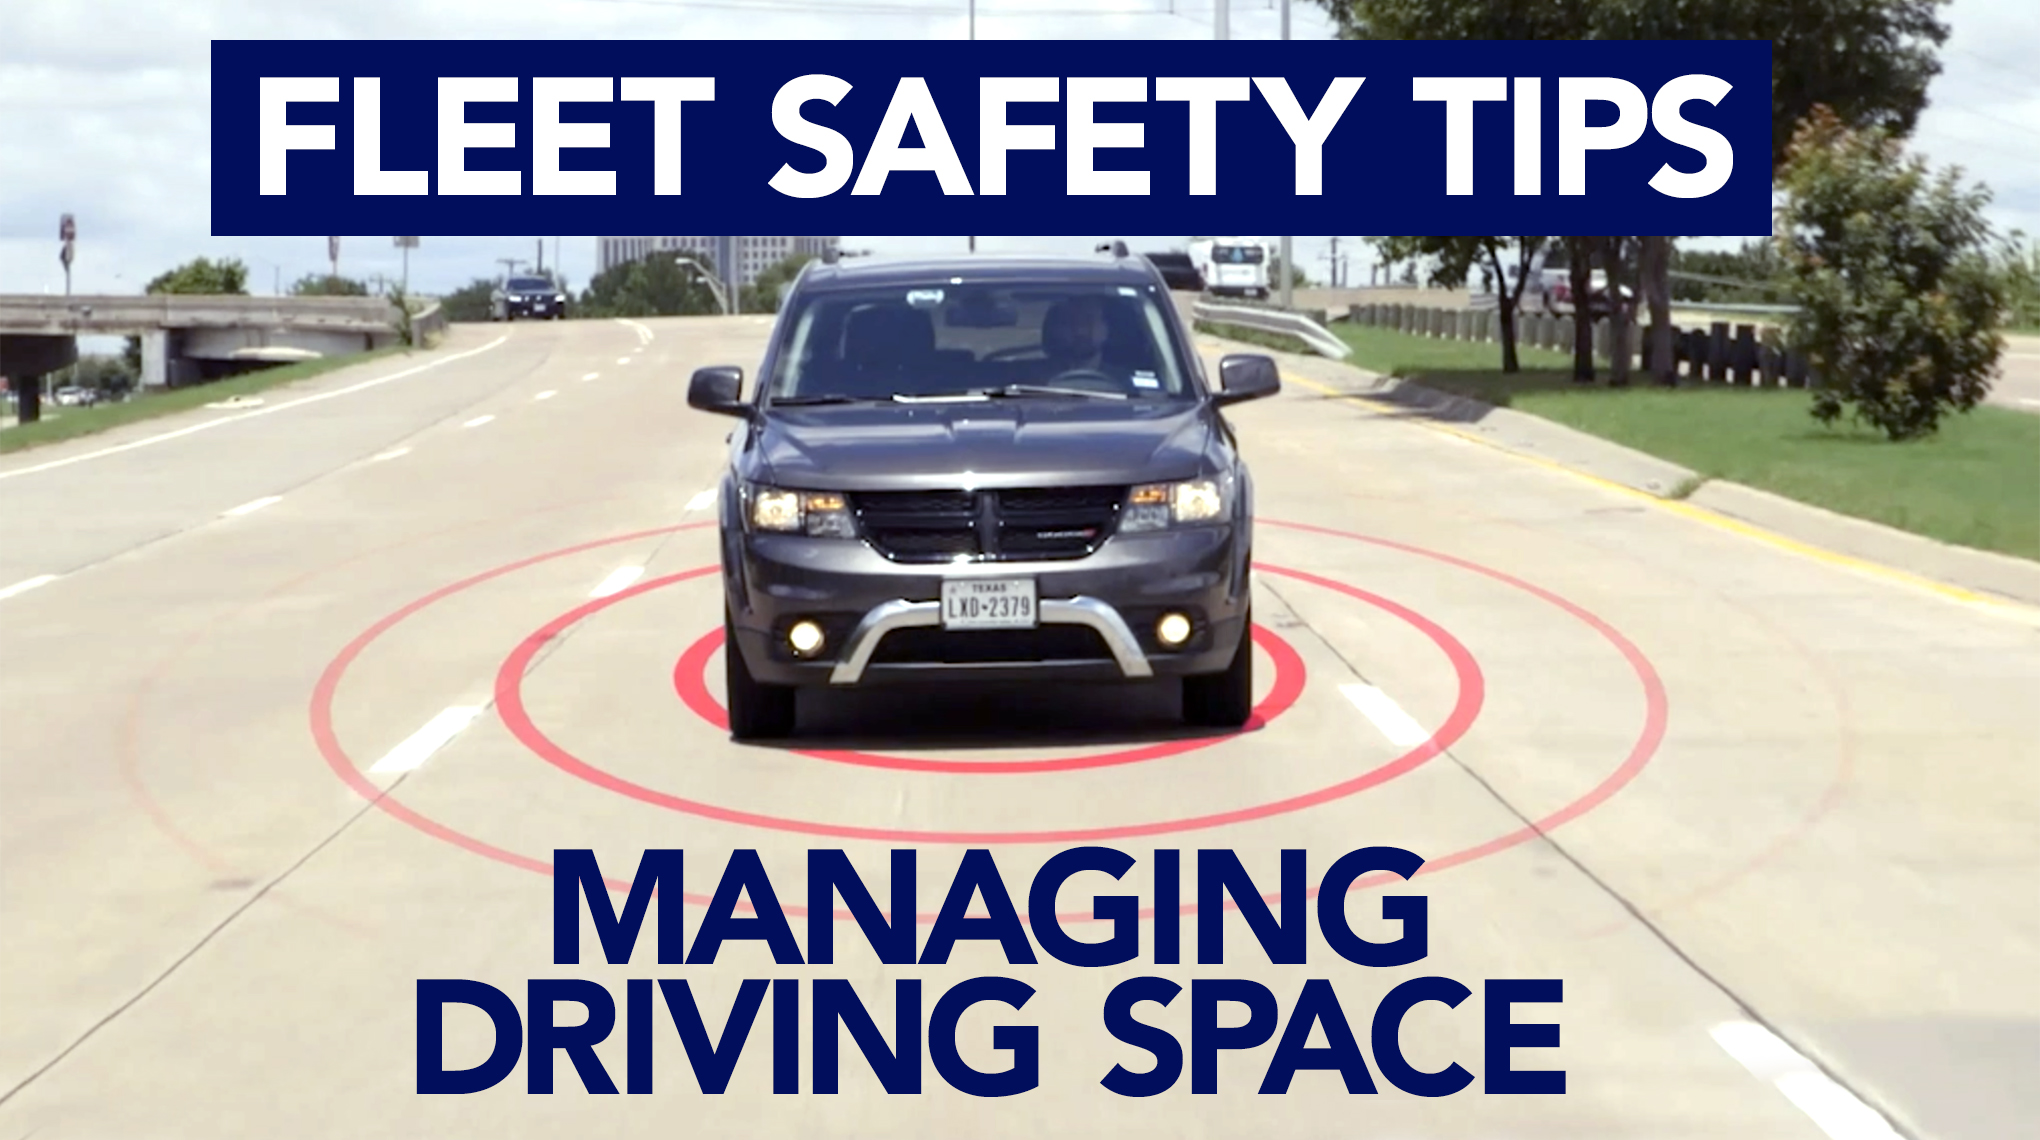 How to Manage Driving Space